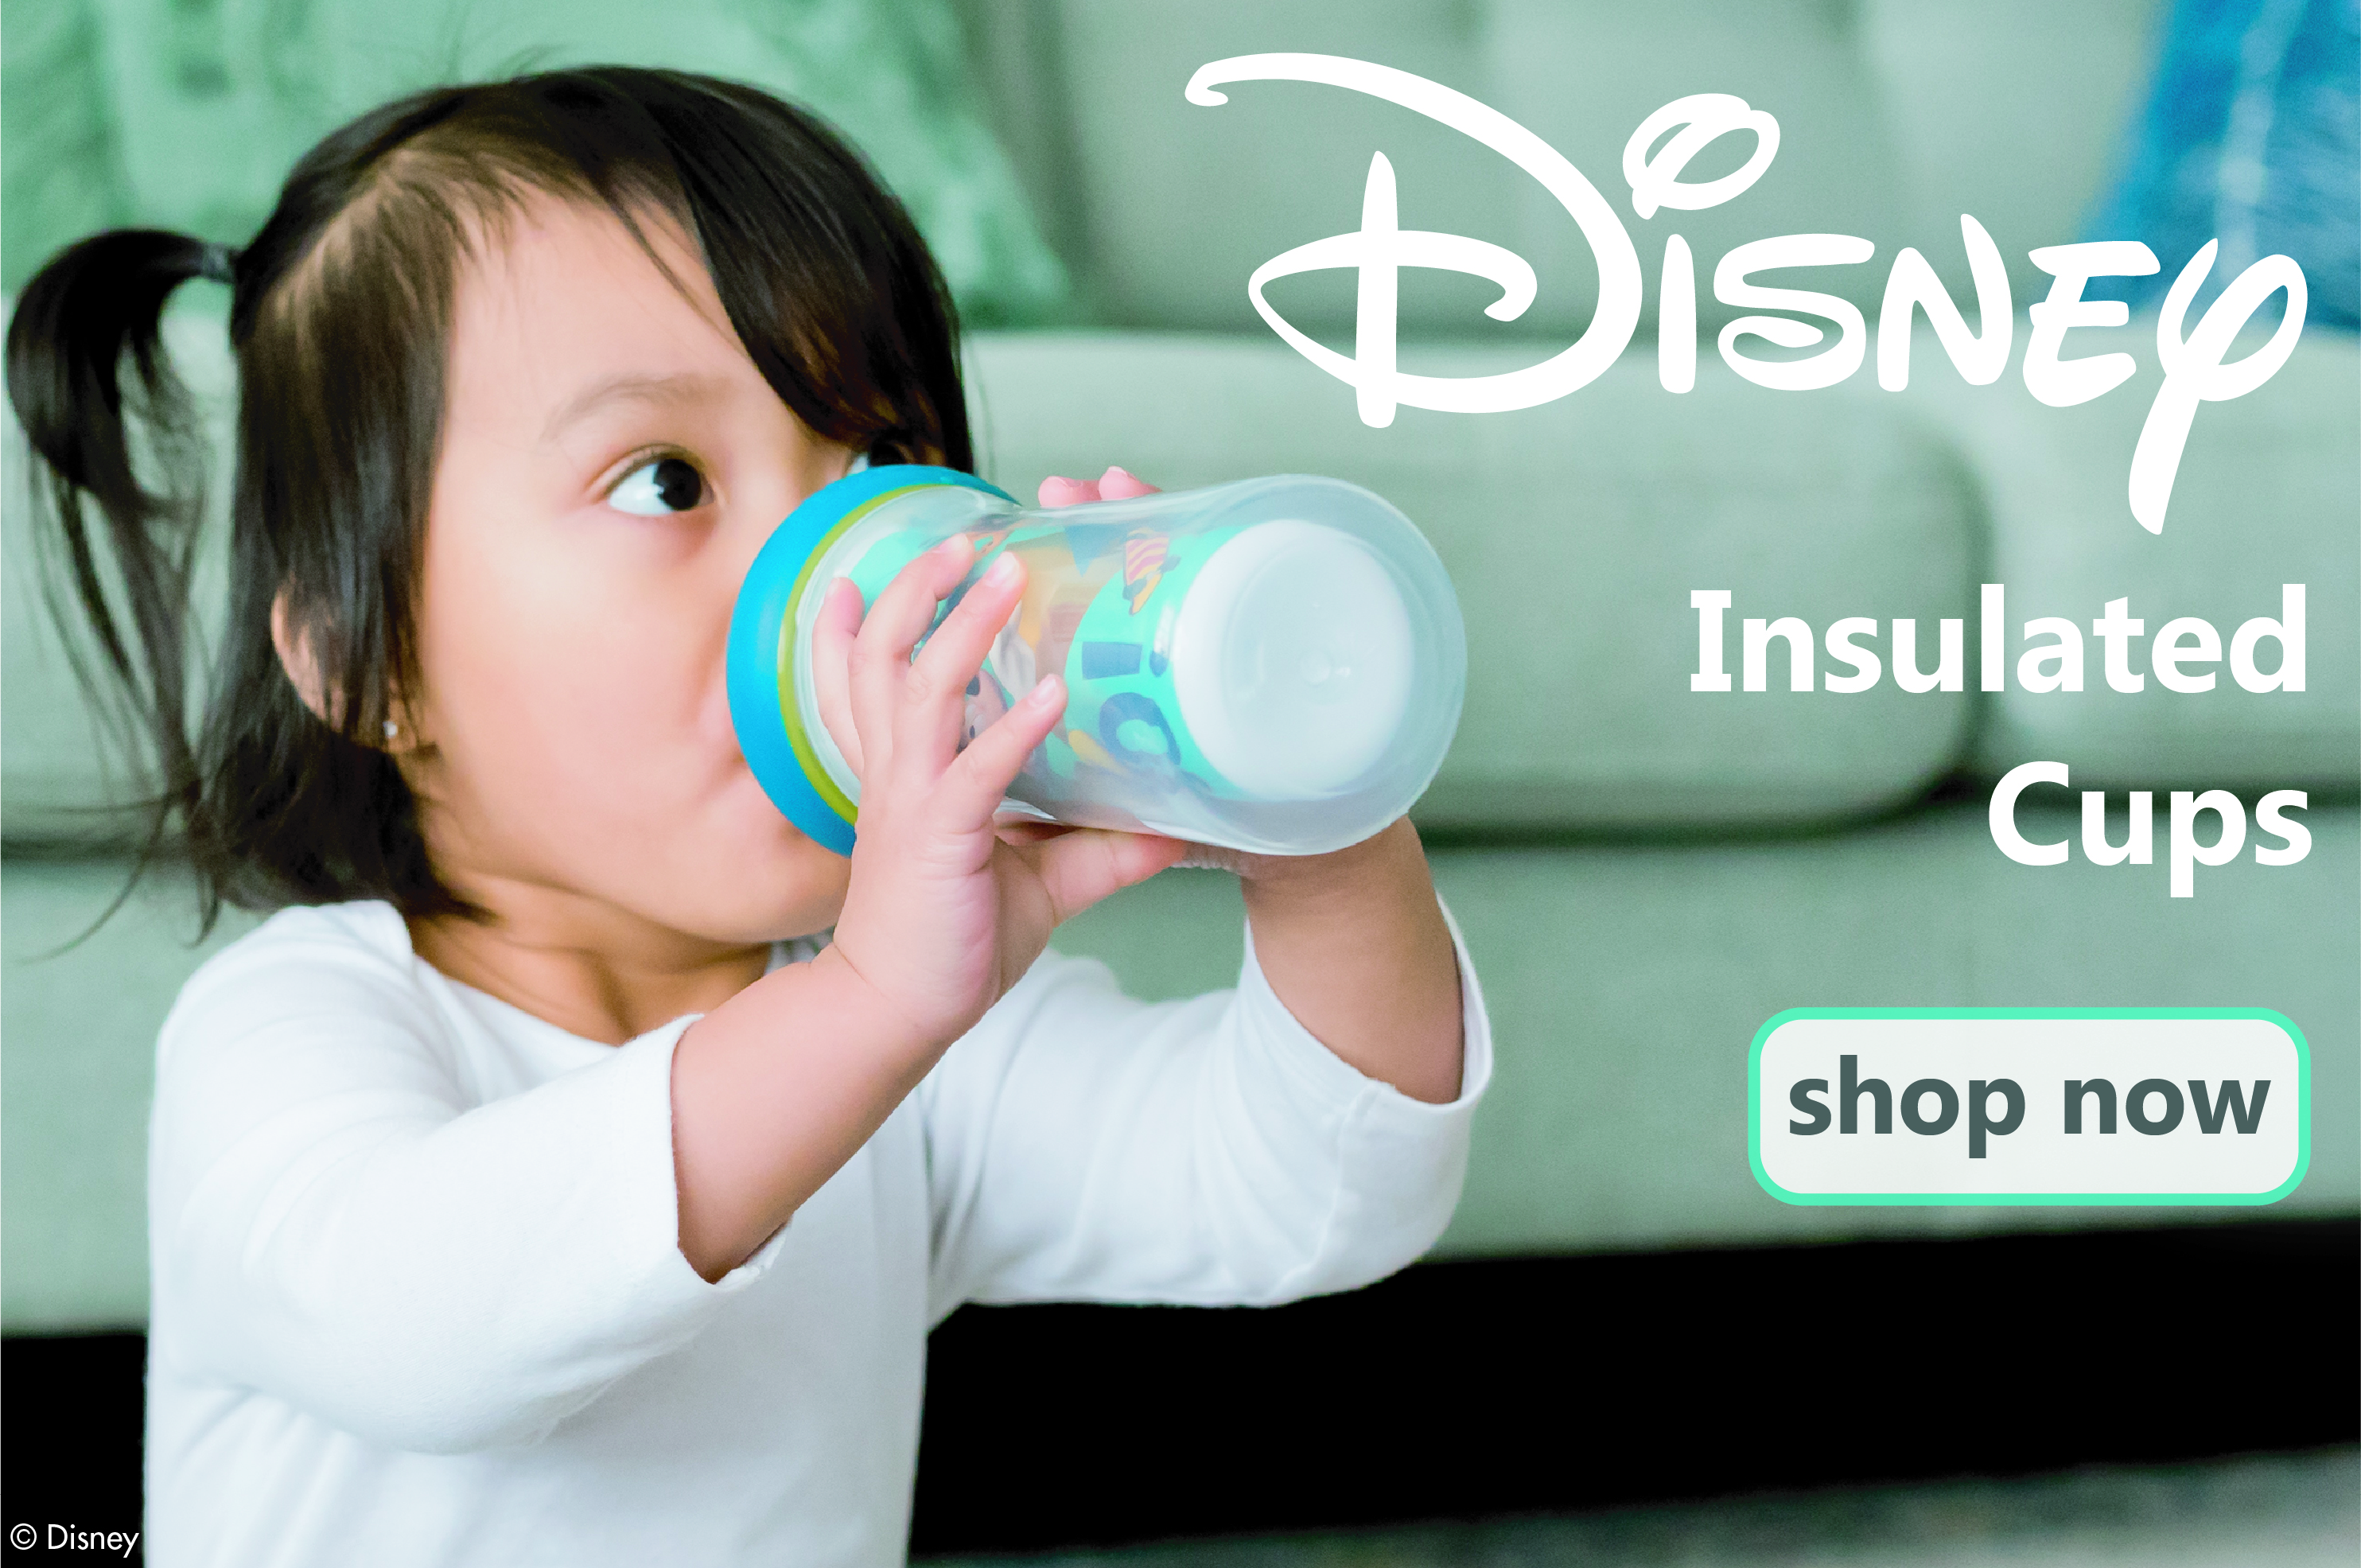 Disney Insulated Cups. Shop Now